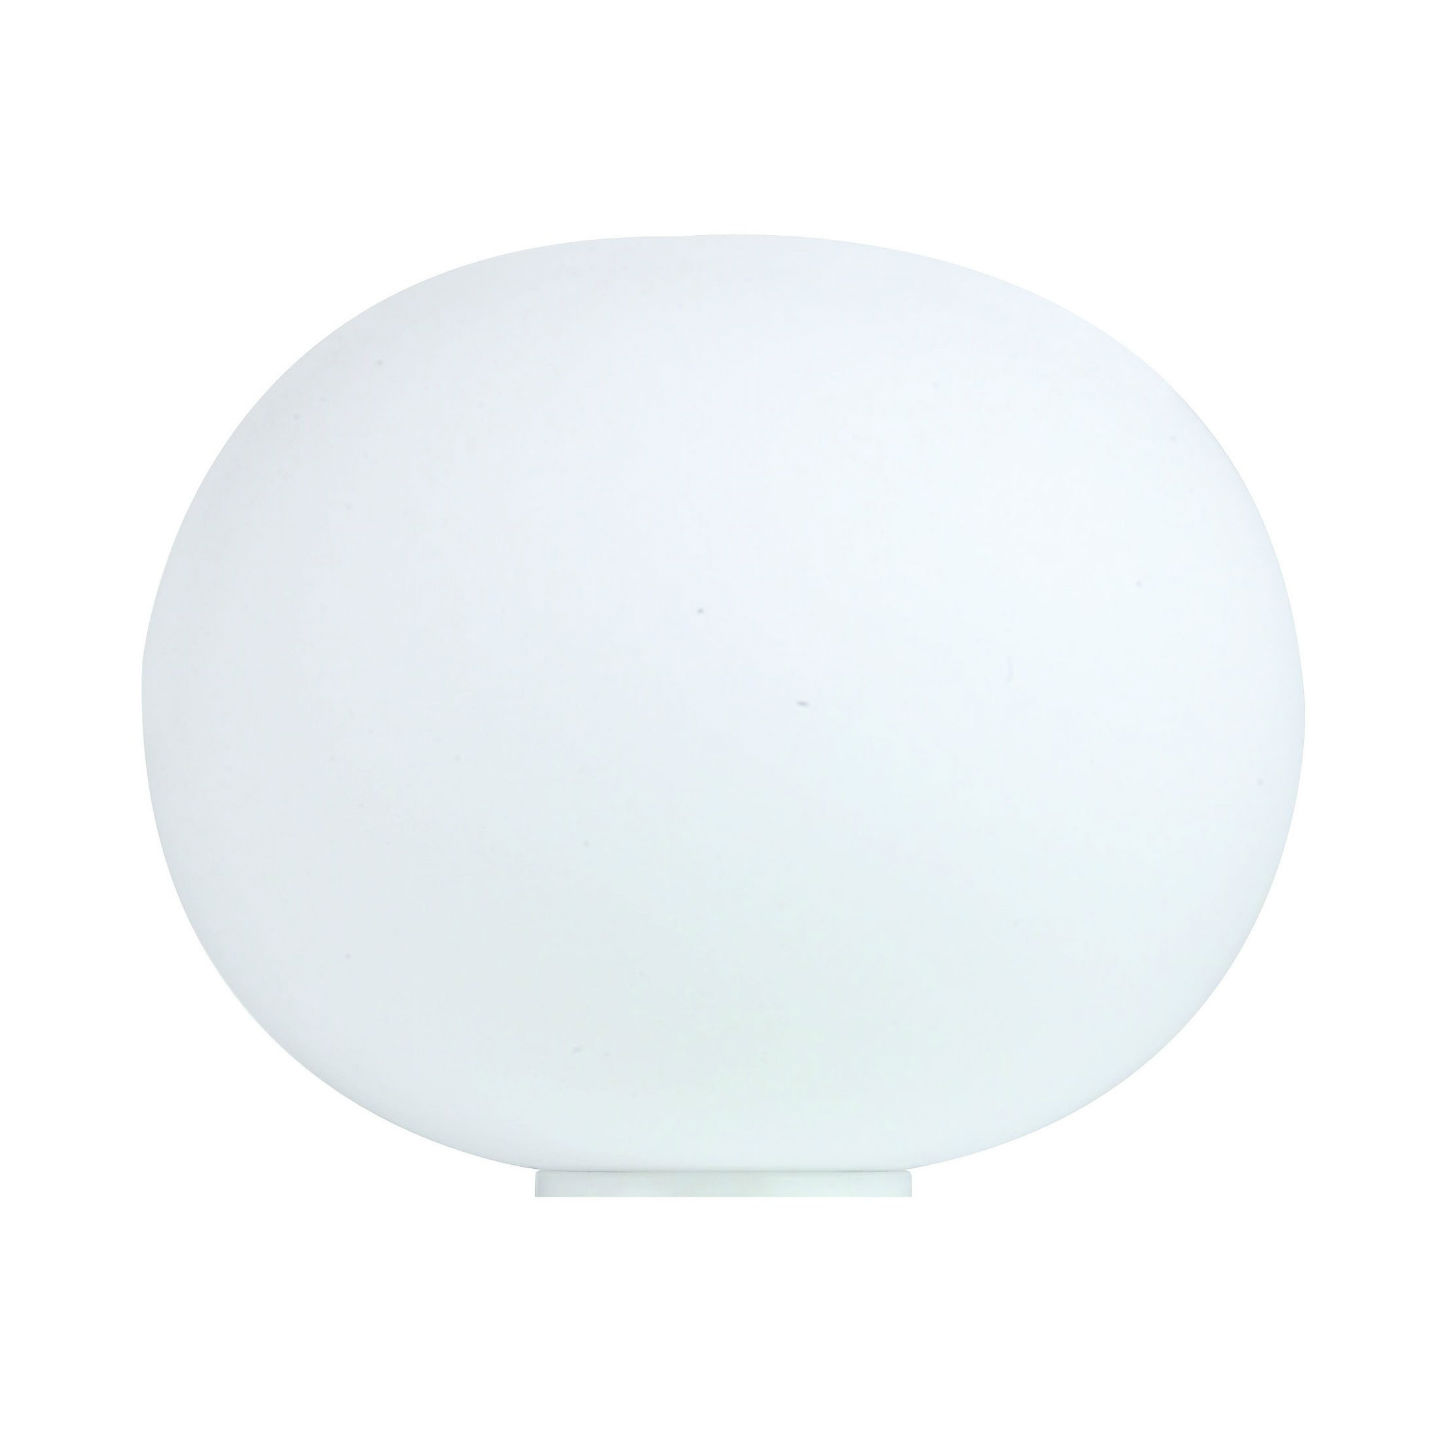 Glo Ball Basic 1 Lampe de table 33cm E27 205W HSGS avec dimmer - blanc opale